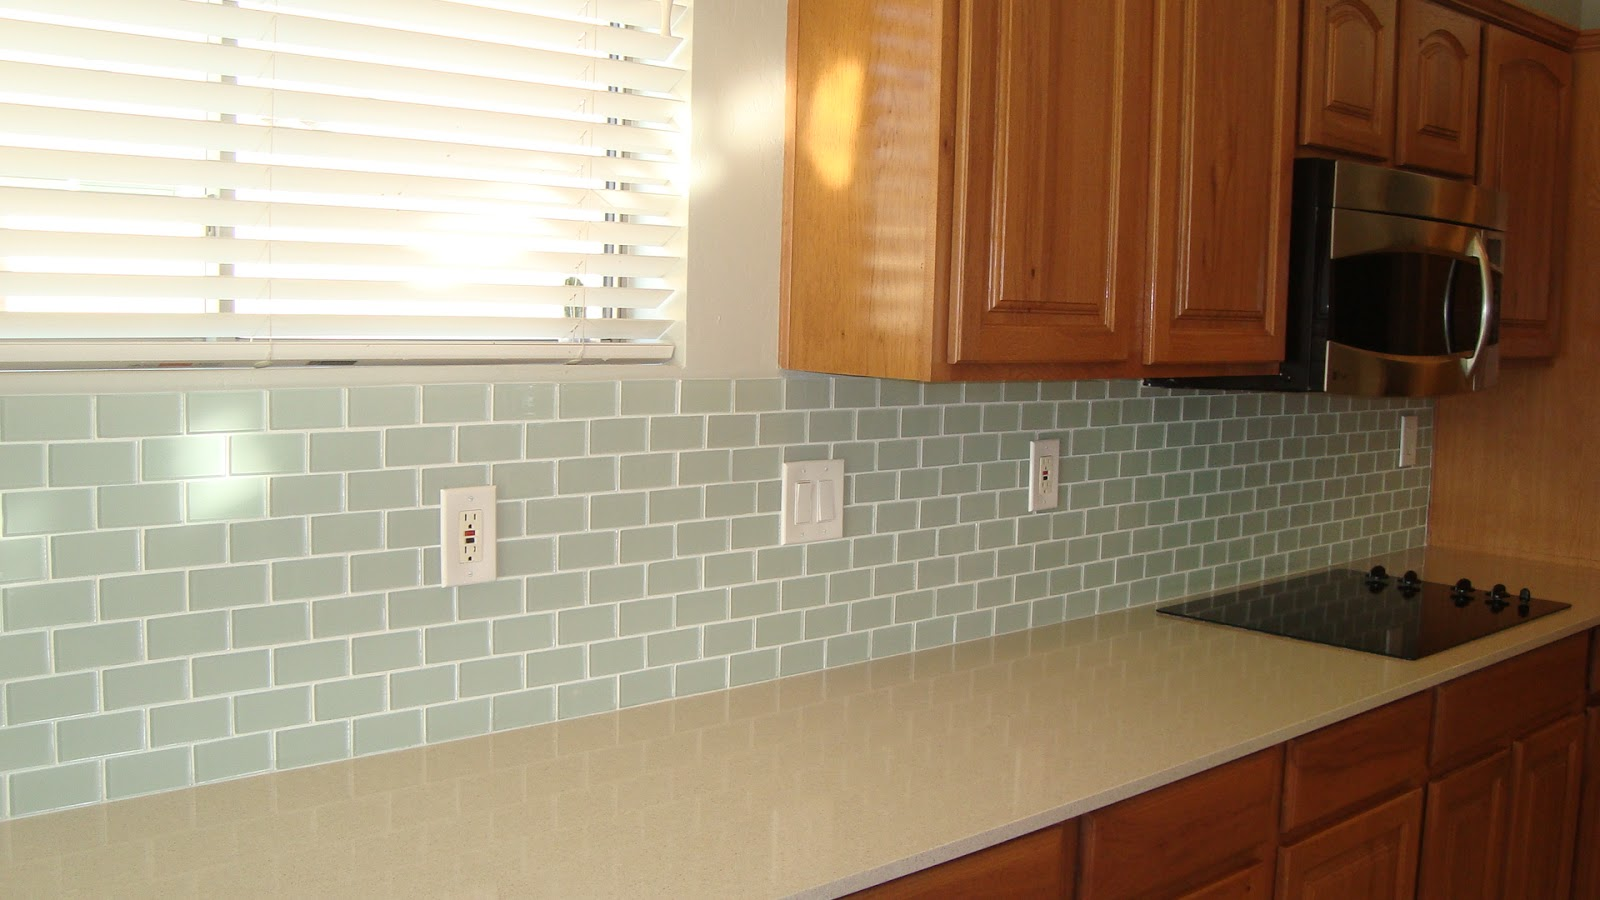 Backsplash For Kitchen At Home Depot